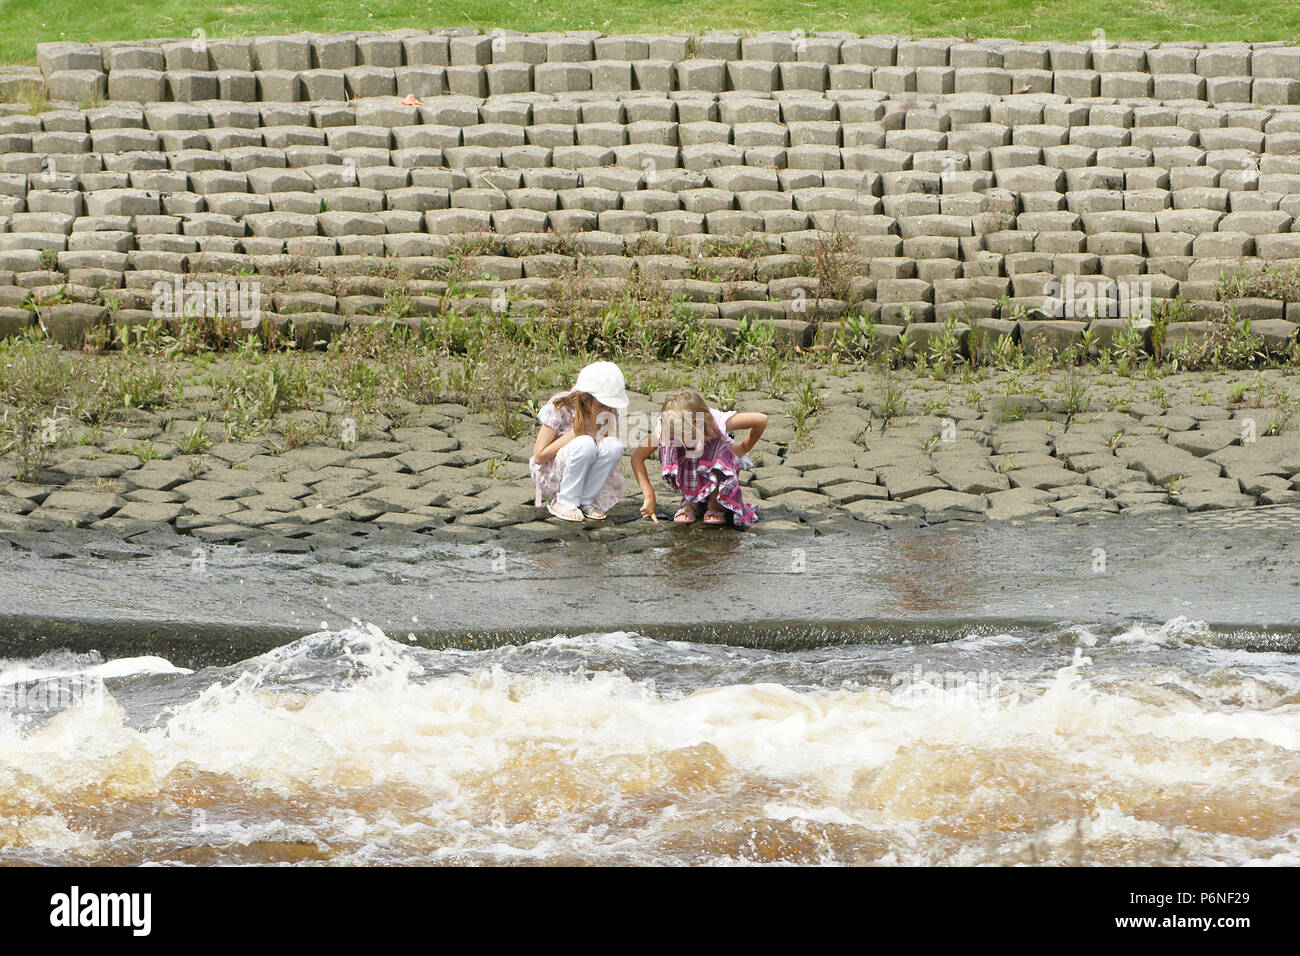 water safety, children playing near fast moving river Stock Photo